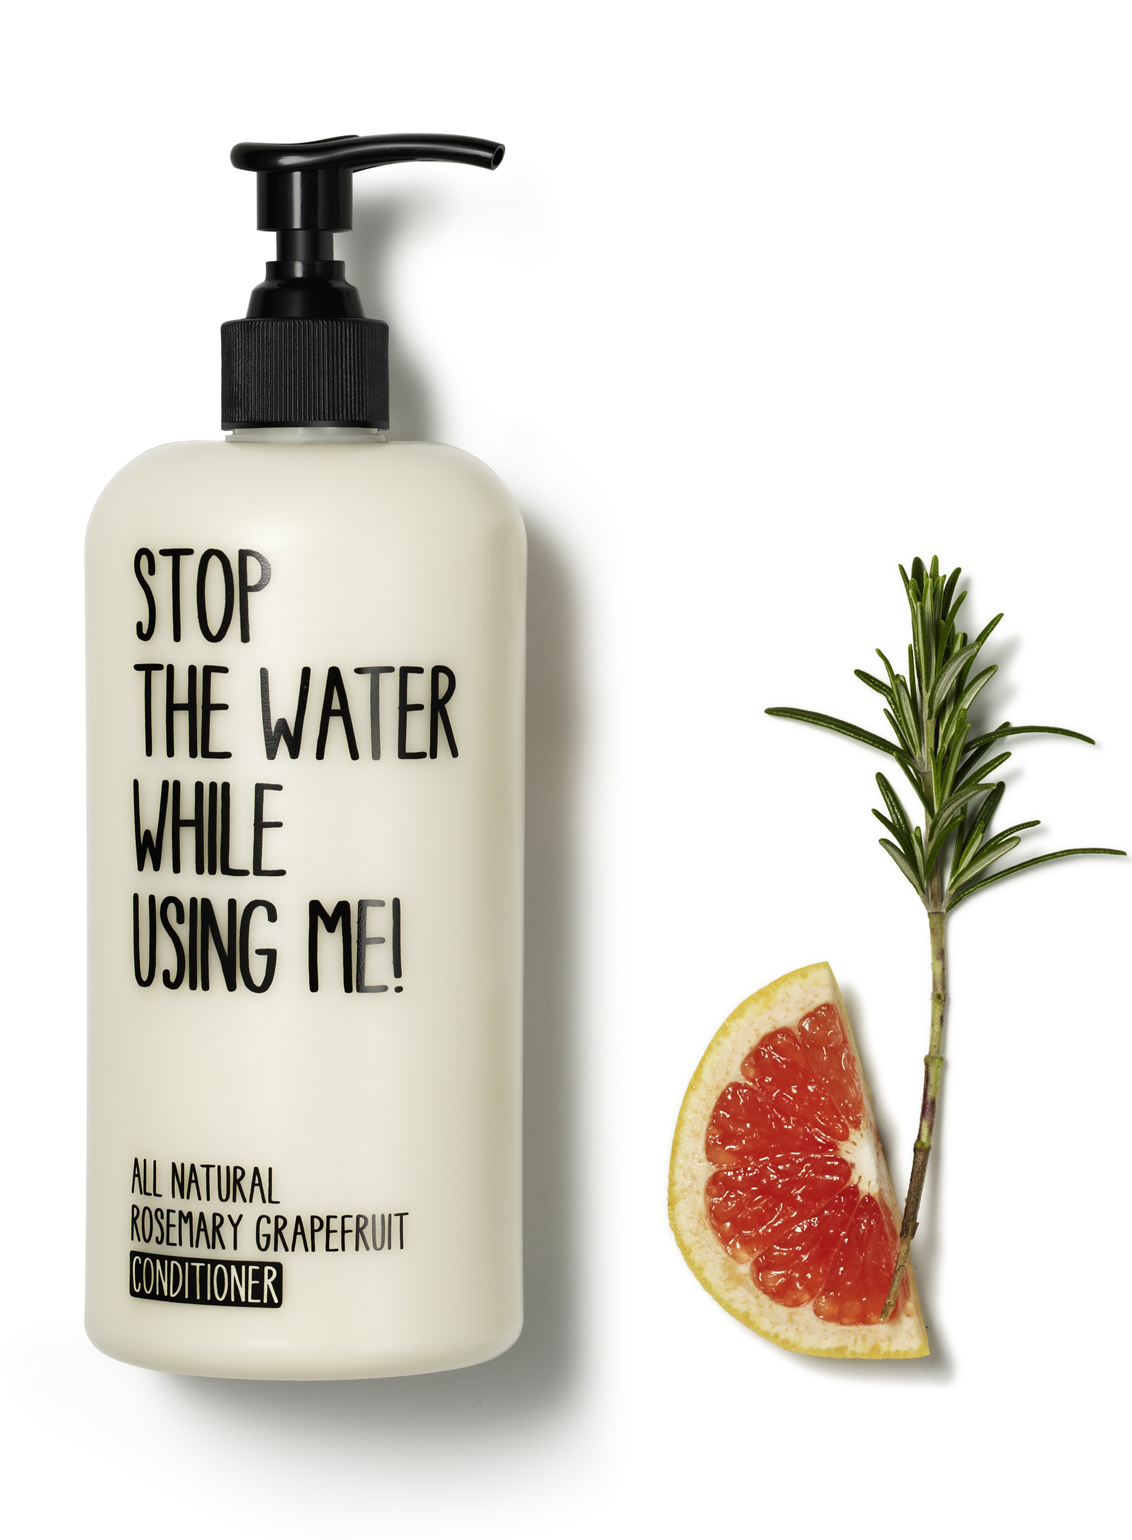 Stop the water while using me 迷迭香葡萄柚護髮乳500ml